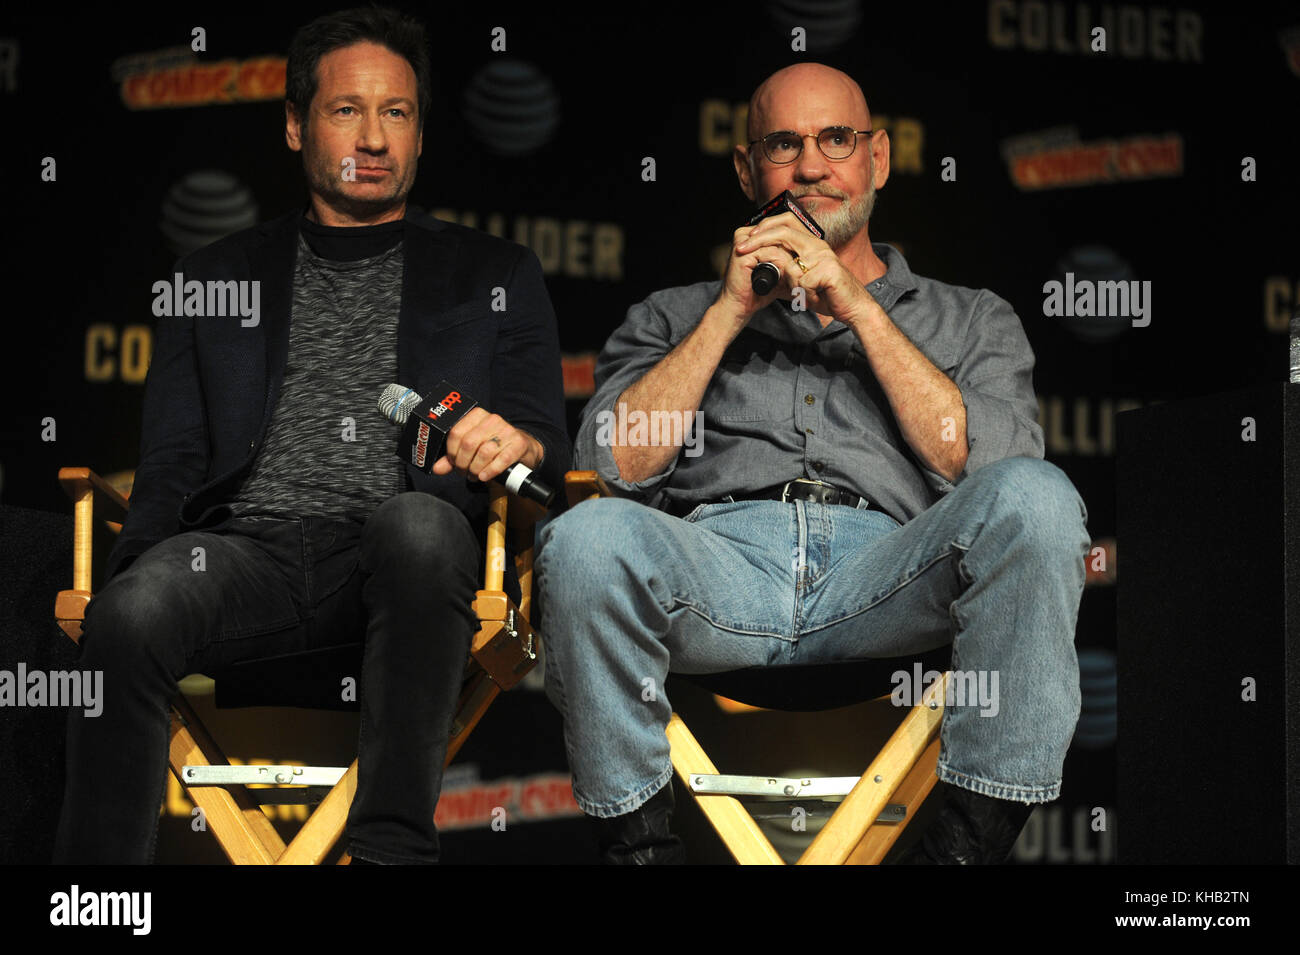 NEW YORK, NY - OCTOBER 08: David Duchovny, Mitch Pileggi  speaks onstage at The X-Files panel during 2017 New York - Stock Image